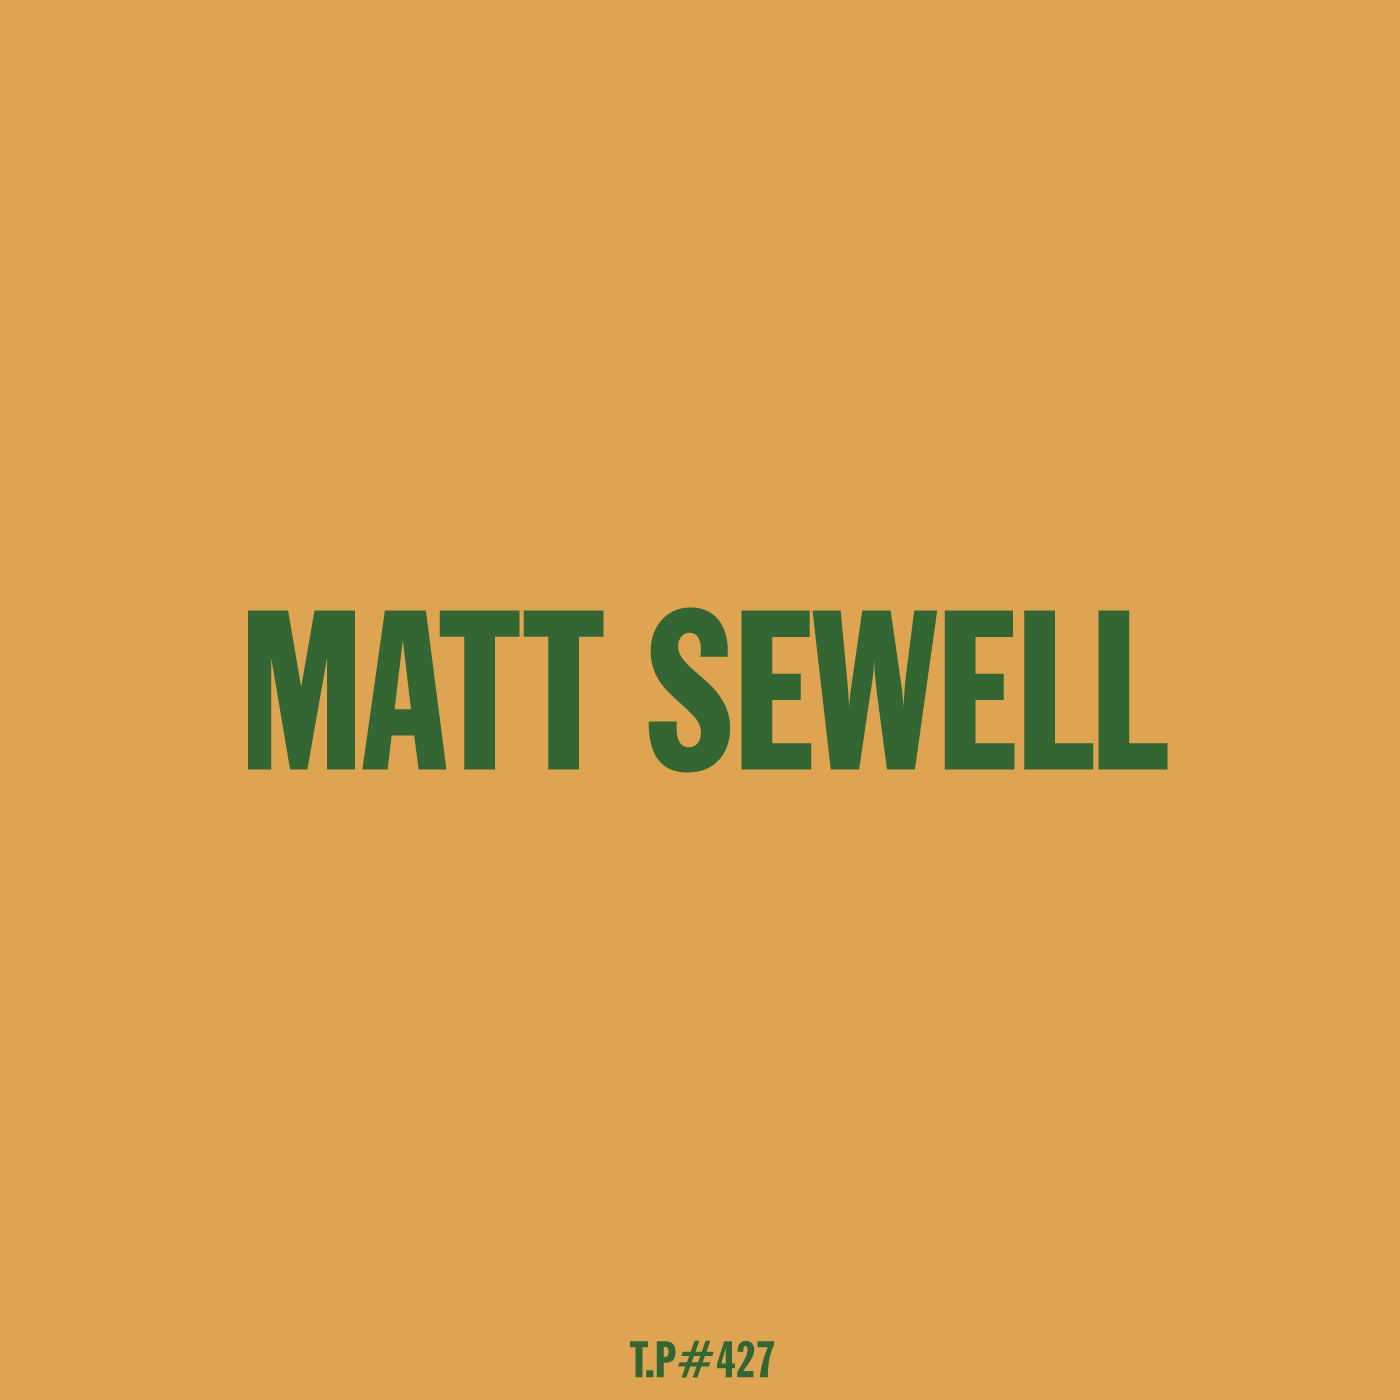 Matt Sewell, Illustrator, Mix, Test Pressing, Cuckoo